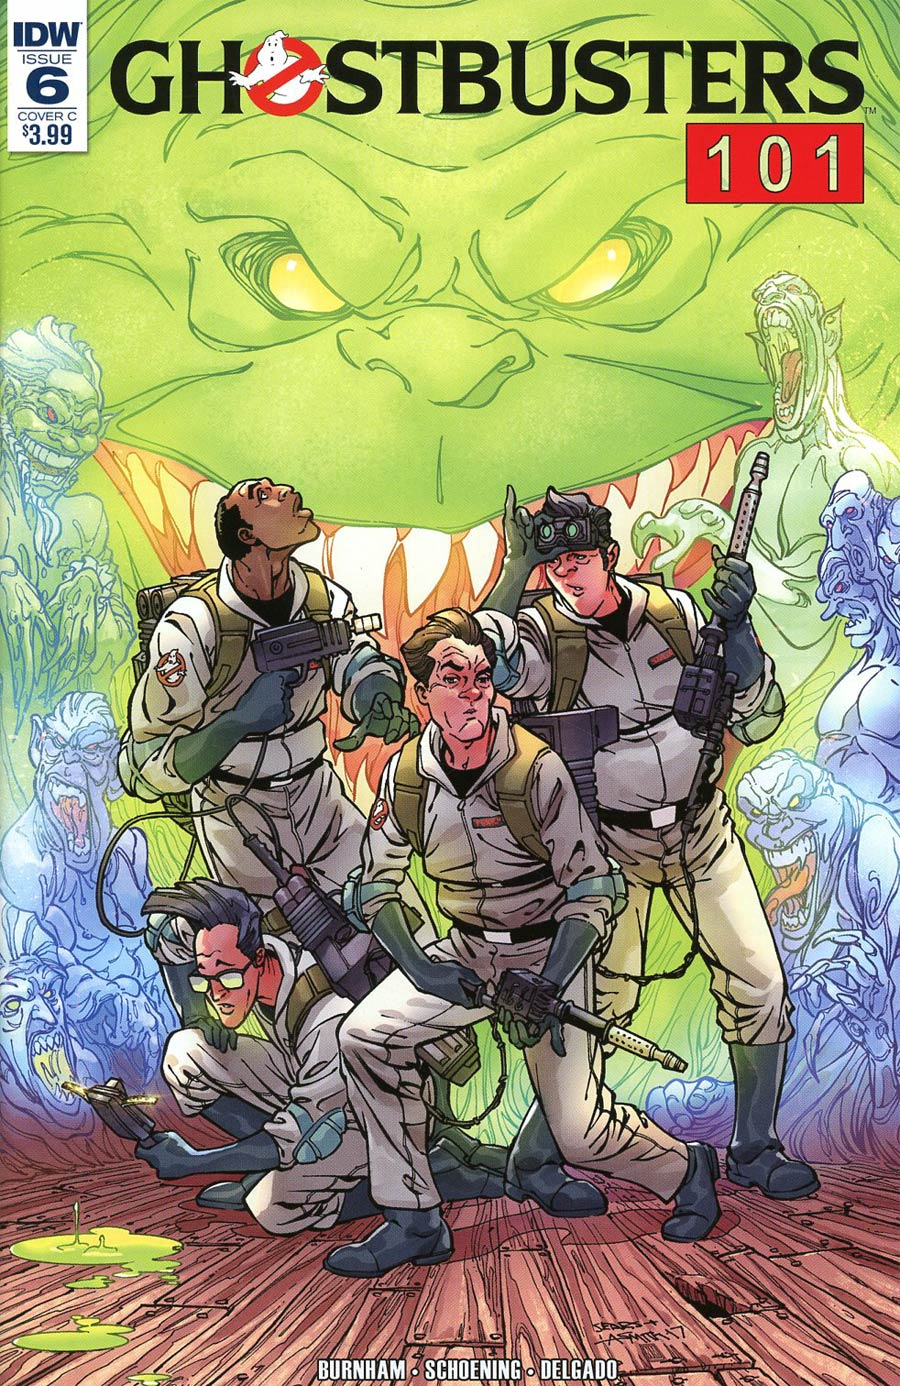 Ghostbusters 101 #6 Cover C Variant Bart Sears Cover